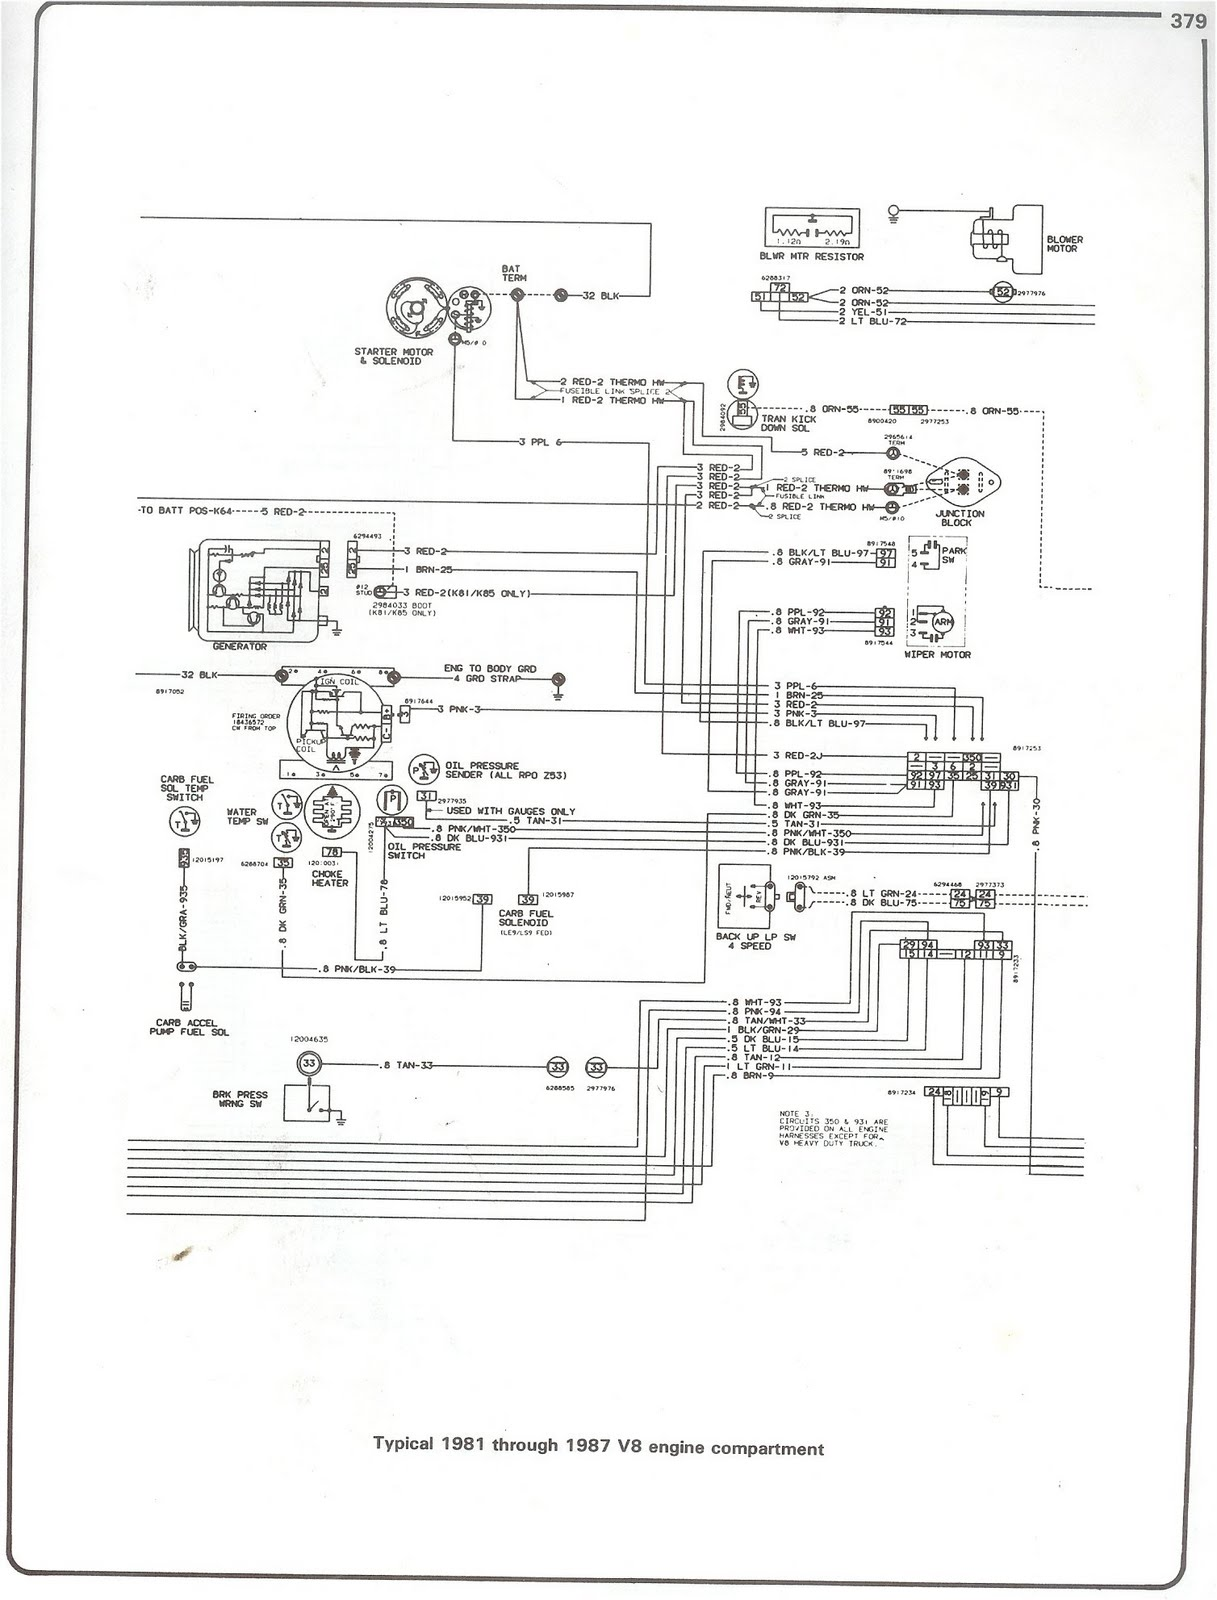 small resolution of 81 chevy c10 wiring diagram wiring diagram technicals 81 gmc truck radio wiring diagram